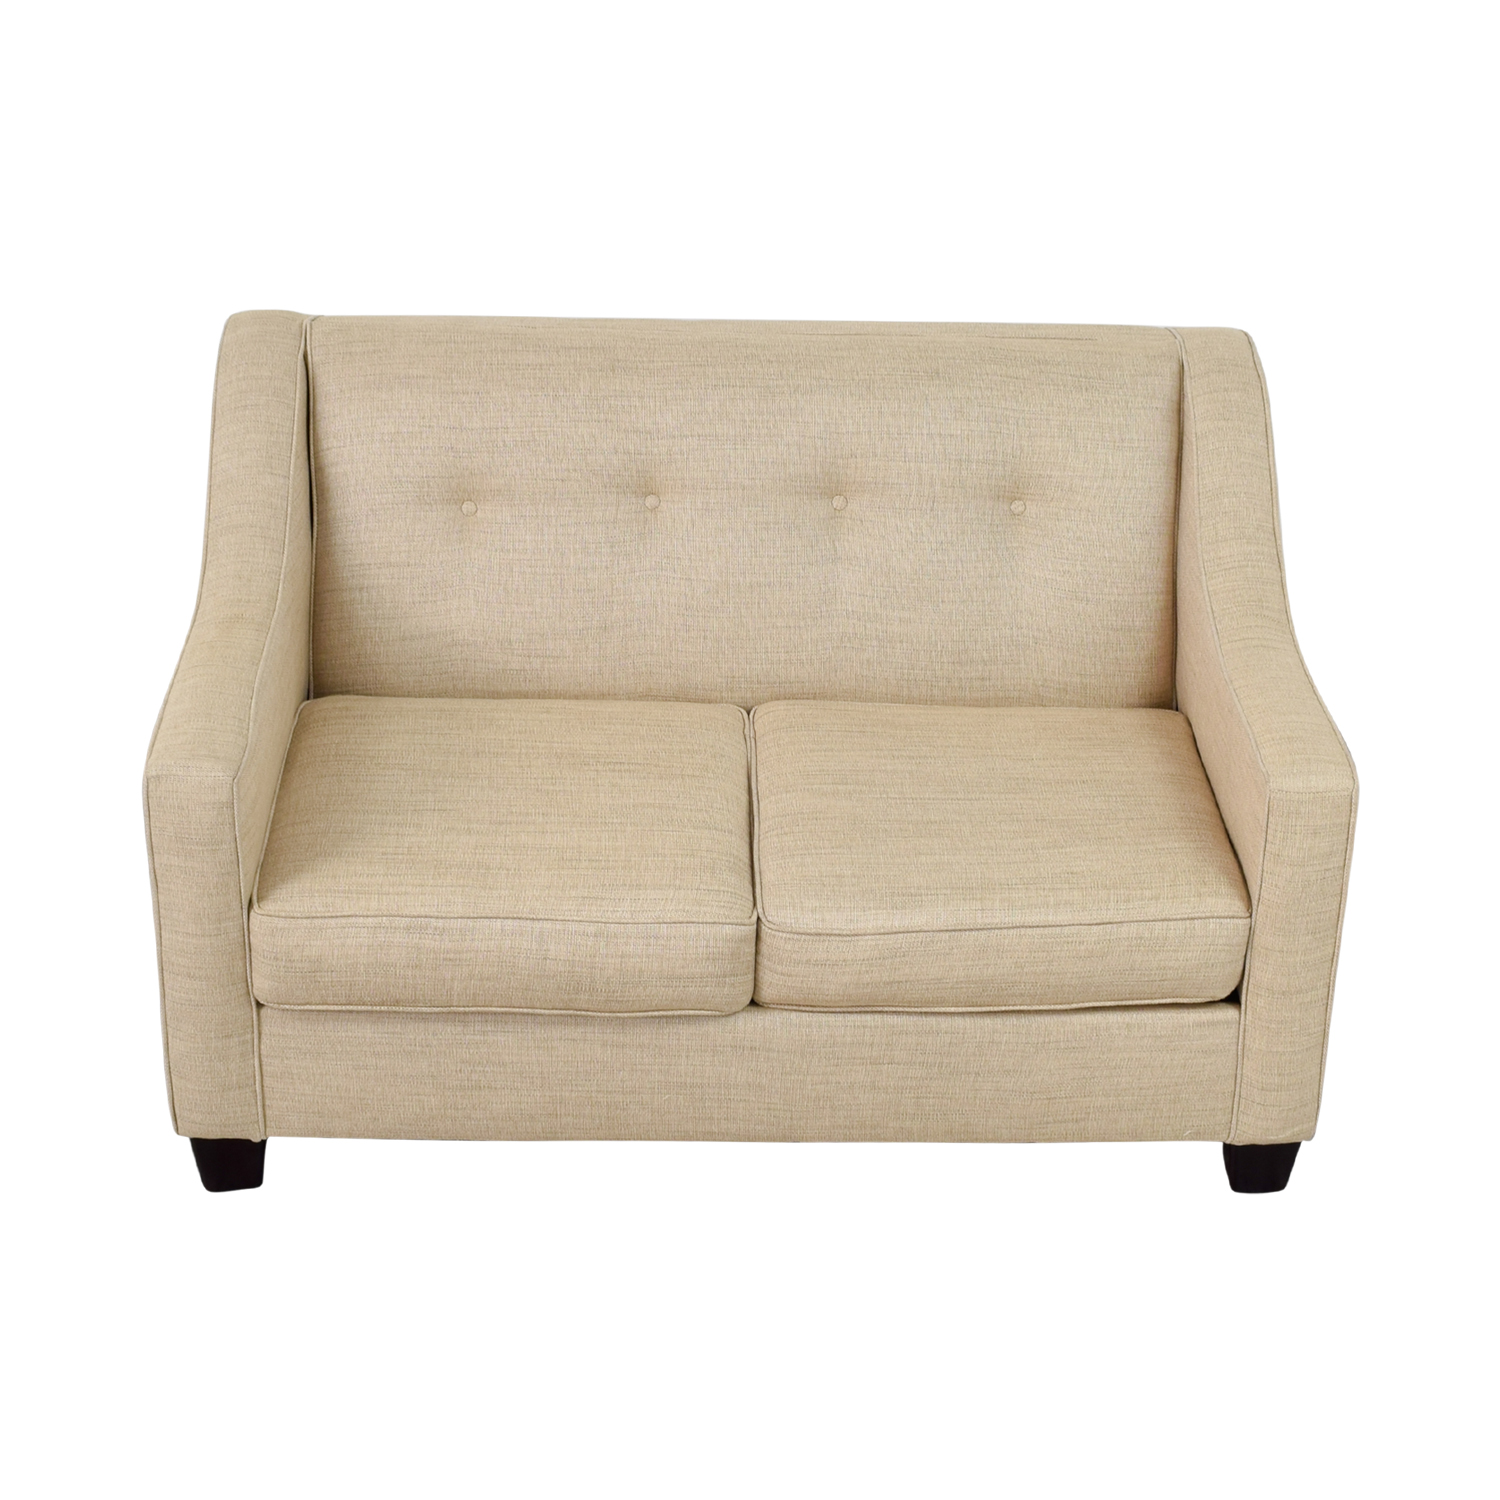 Bob's Furniture Bob's Furniture Caleb Tan Tufted Back Loveseat second hand